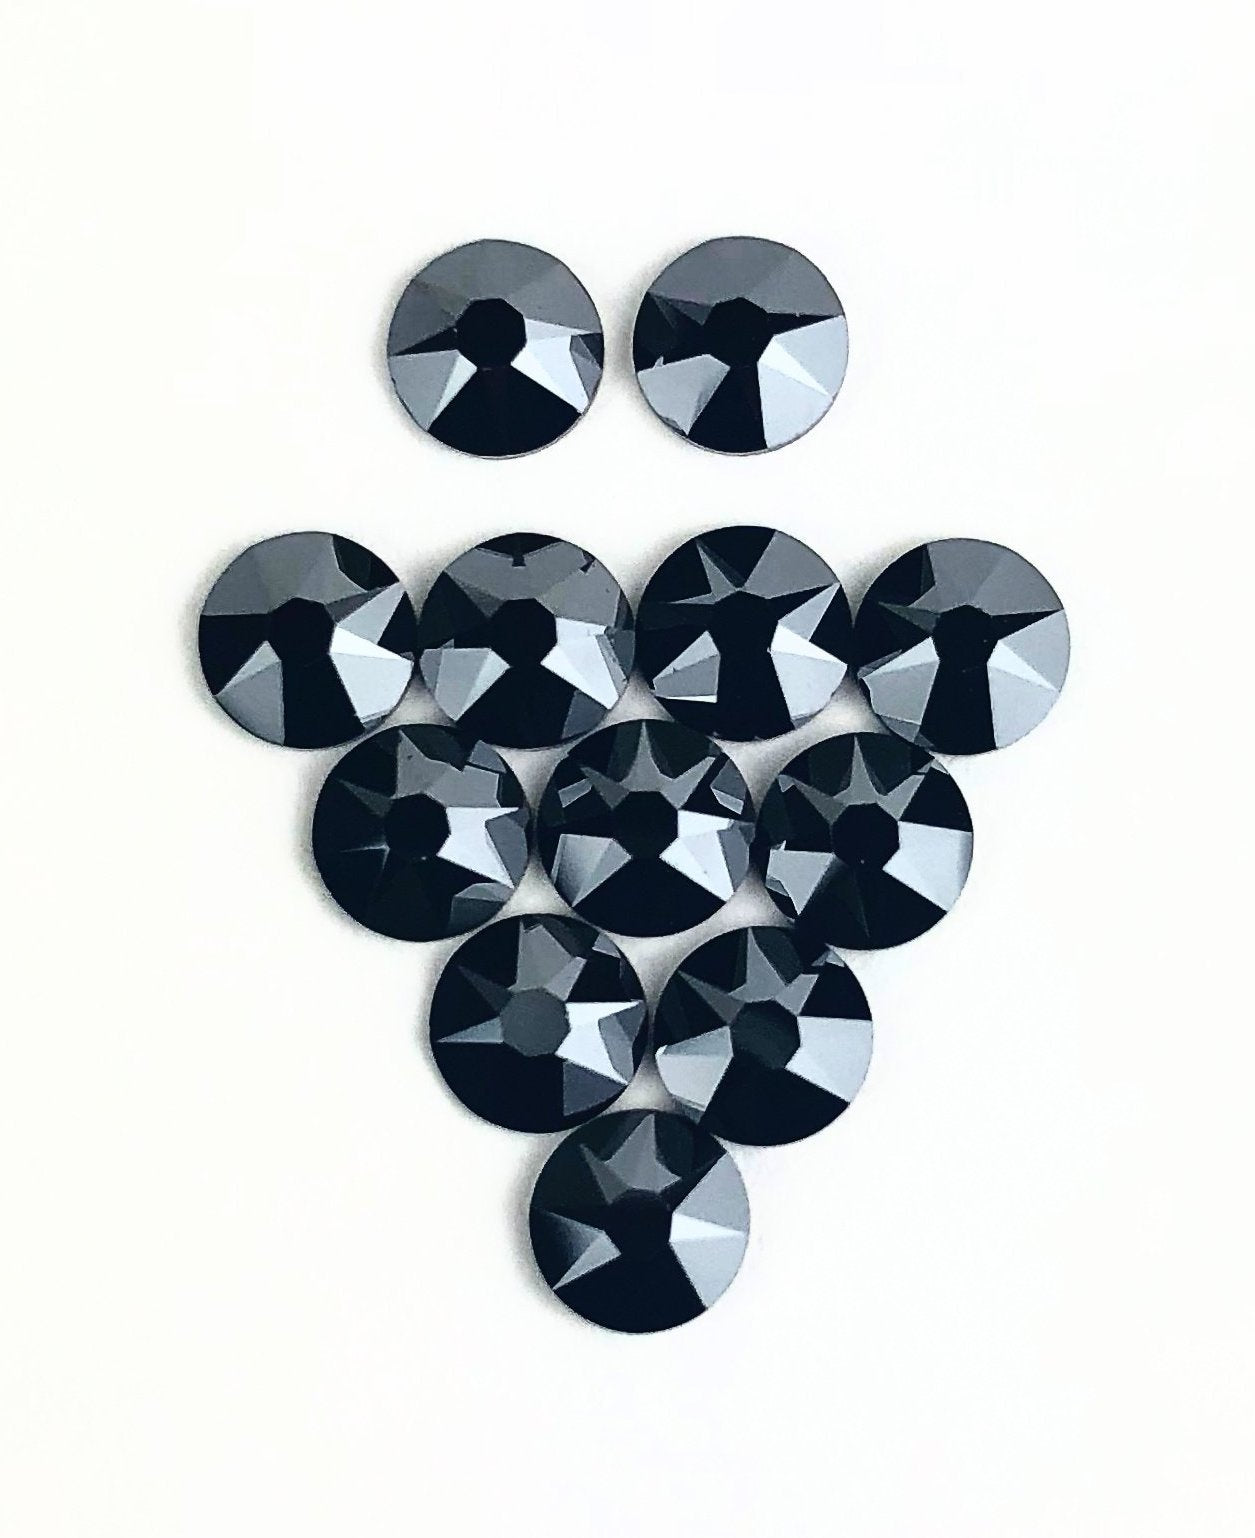 Jet Black Swarovski Crystal at Home Kit